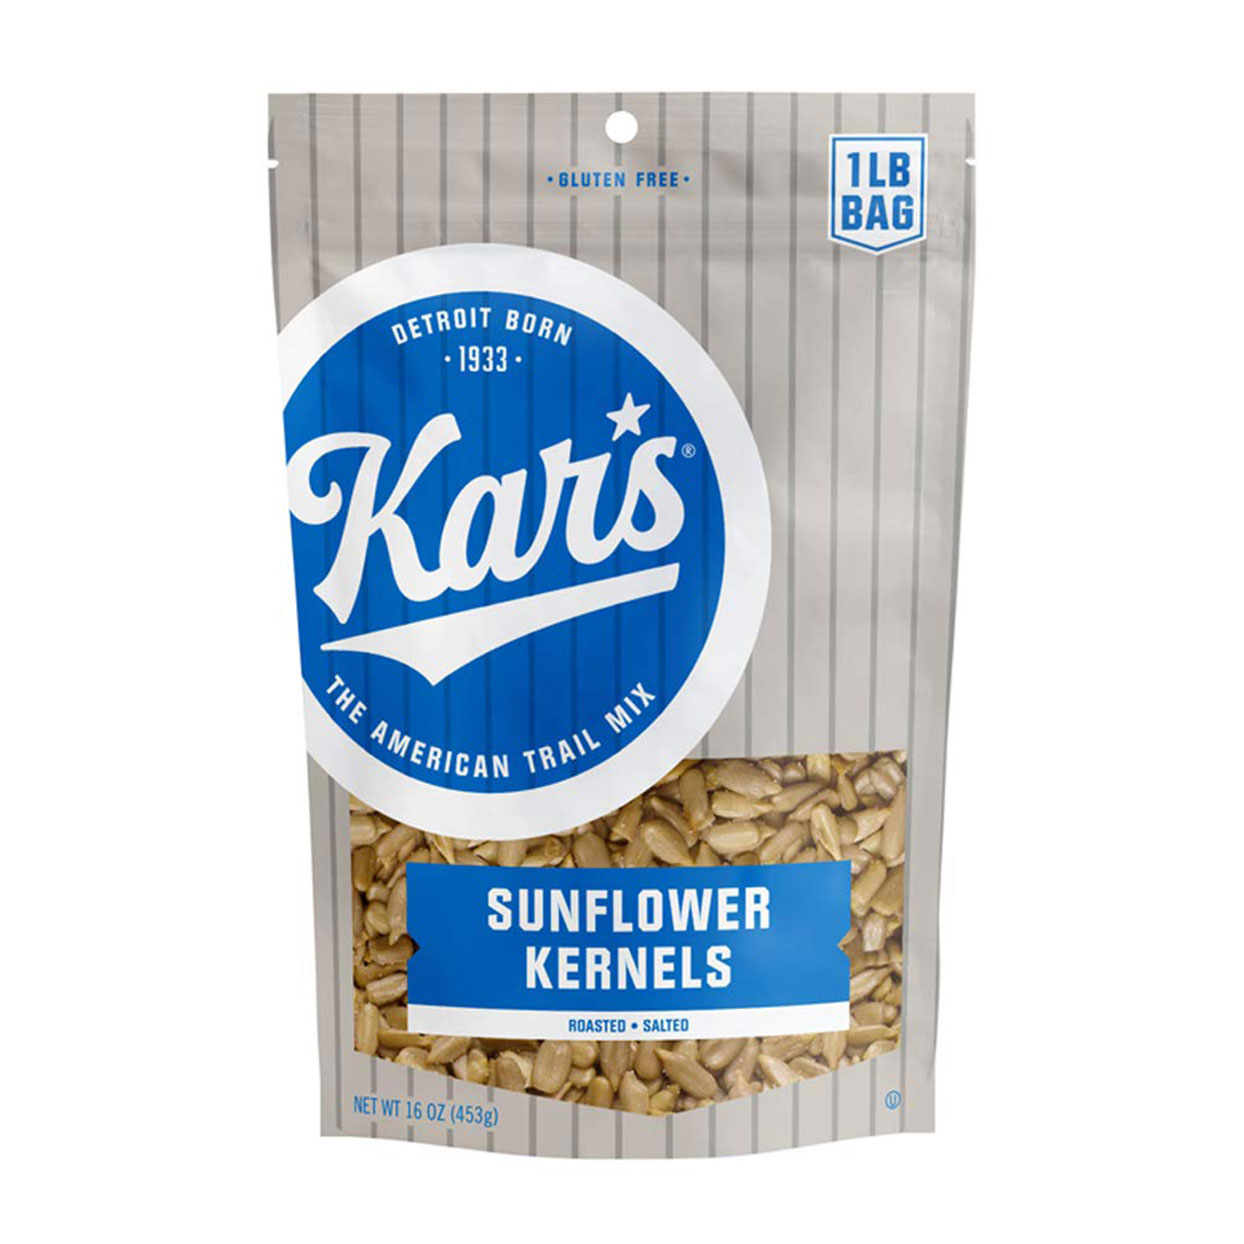 Kar's Roasted and Lightly Salted Sunflower Kernels